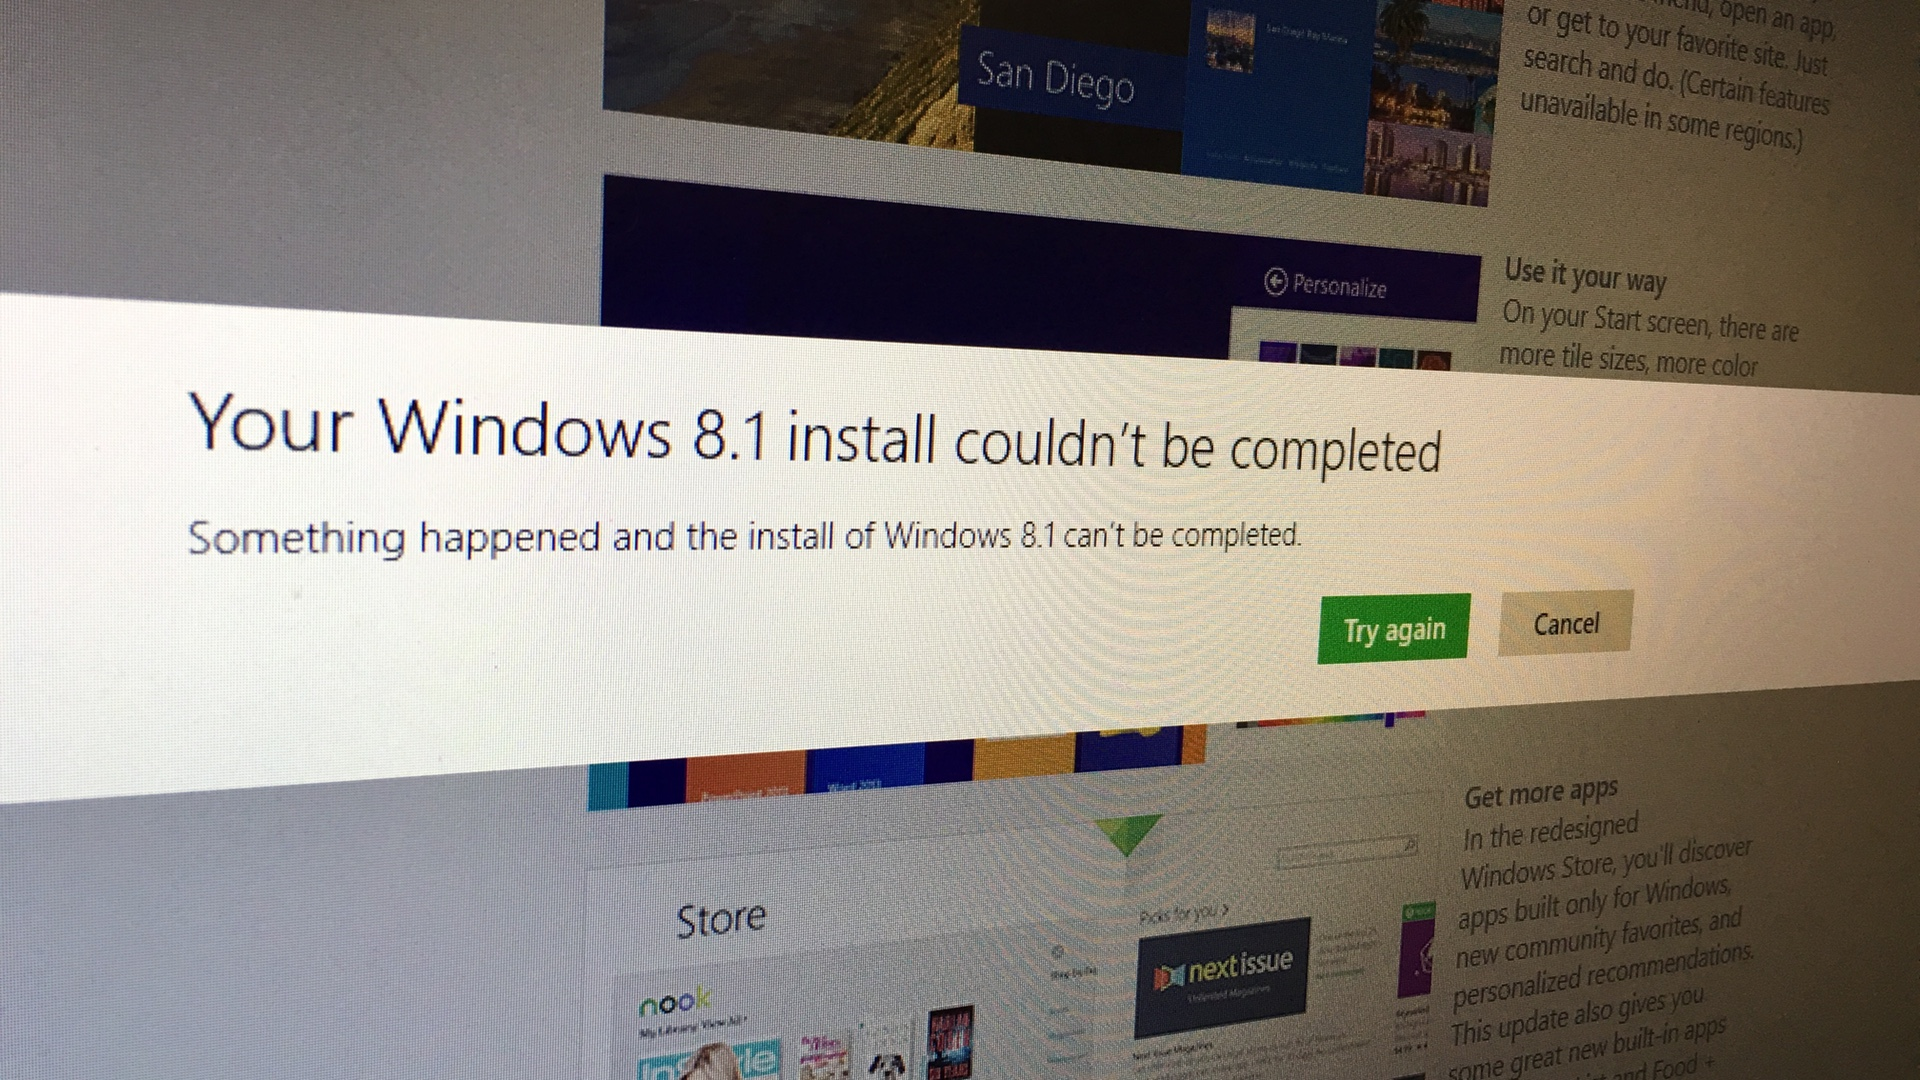 Windows 8.1 Install could not be completed